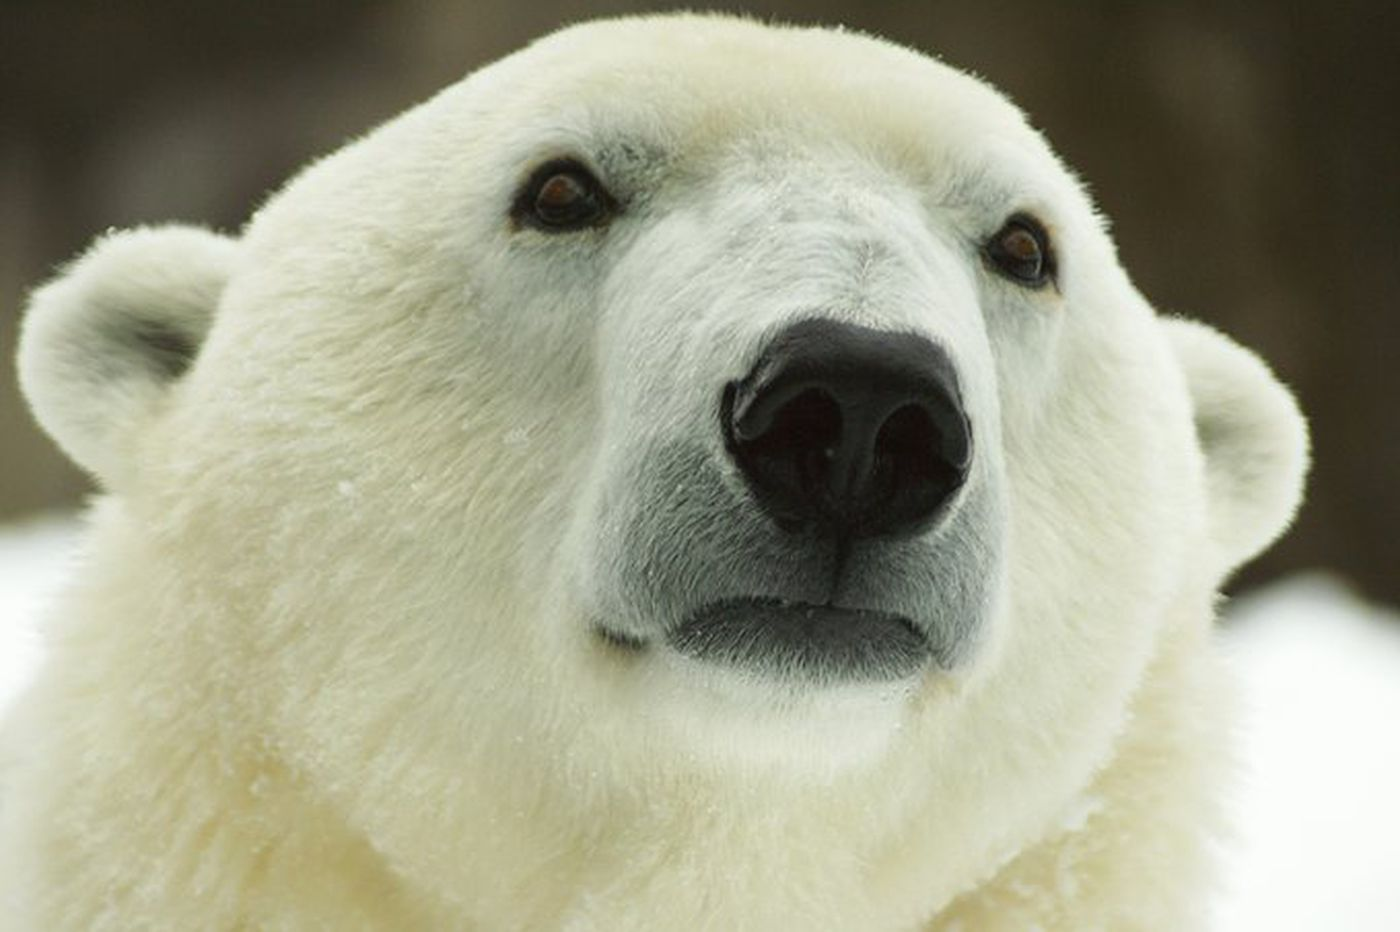 Philadelphia Zoo's Klondike the polar bear dies